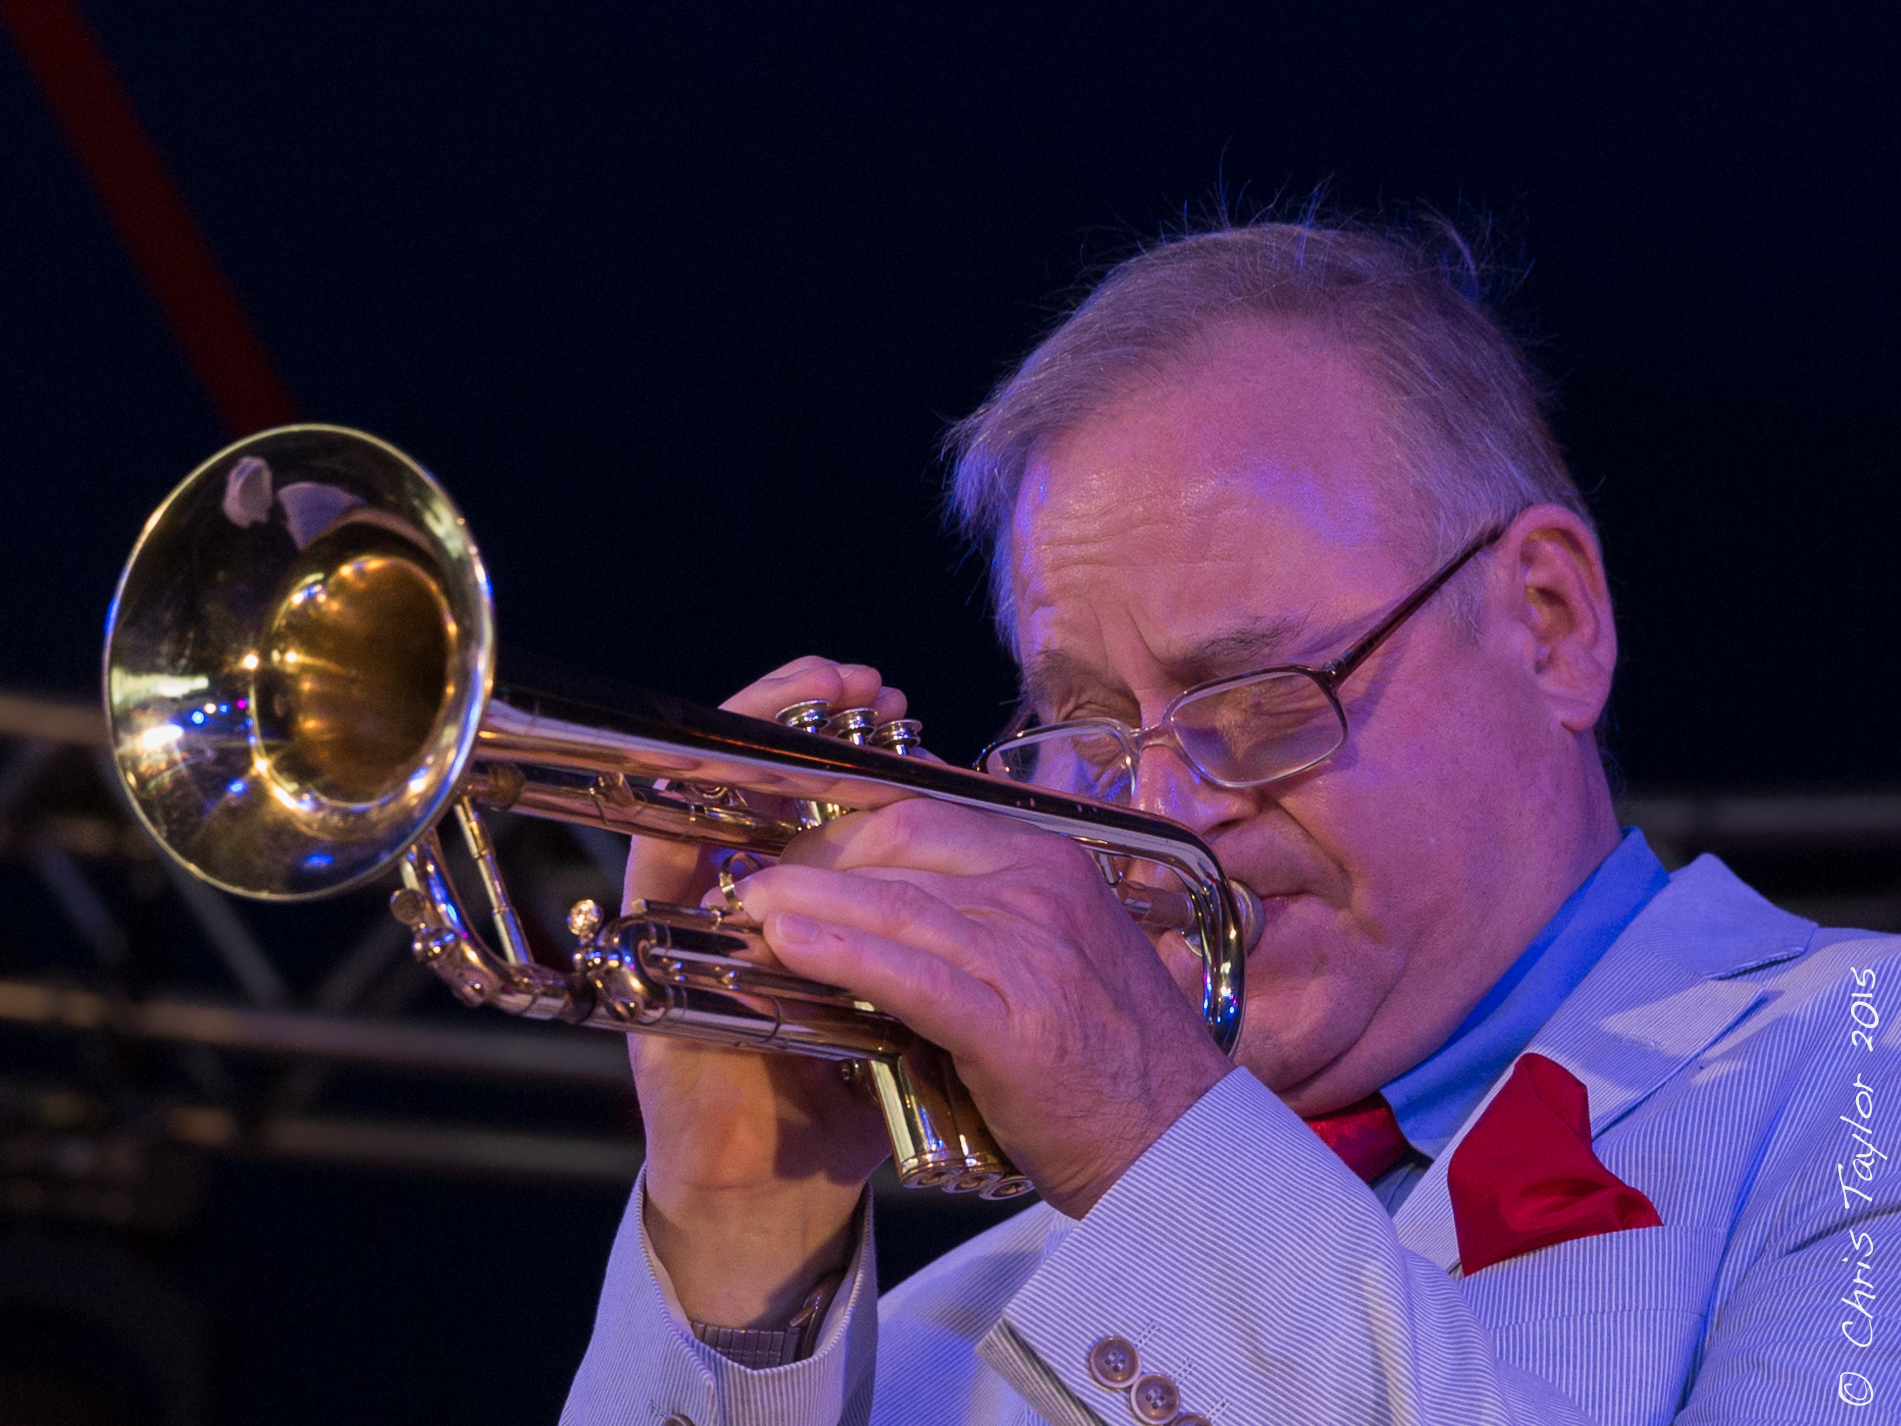 Ealing Jazz Festival 1st August 2015